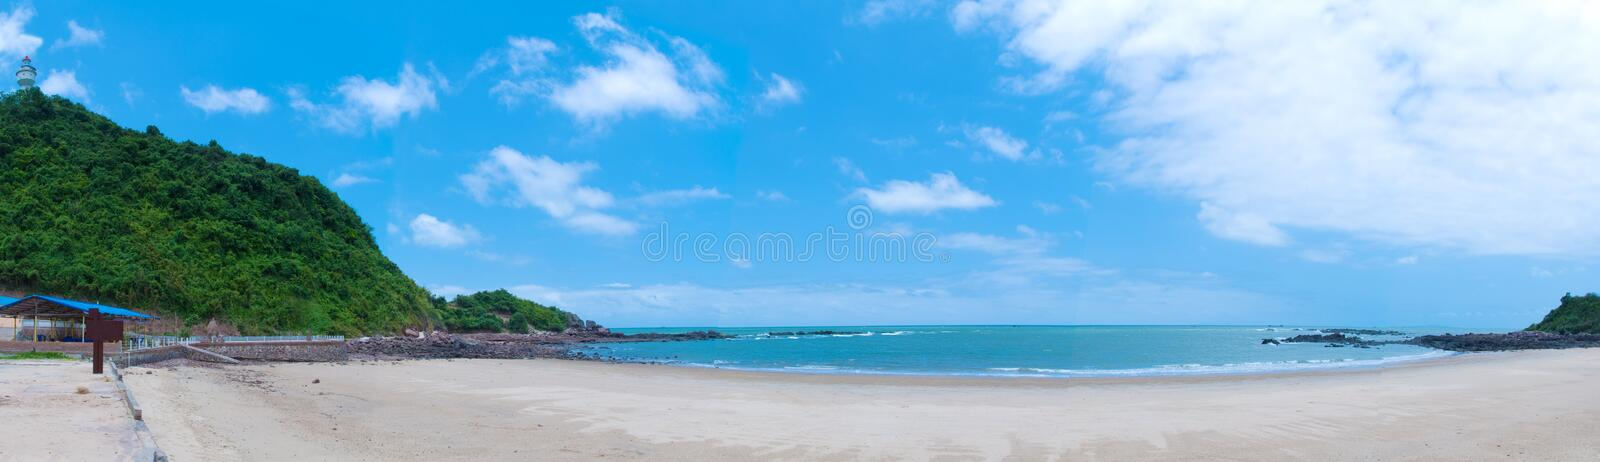 Blue sky and sea. Beautiful beach panorama, clear sky with white clouds floating stock images